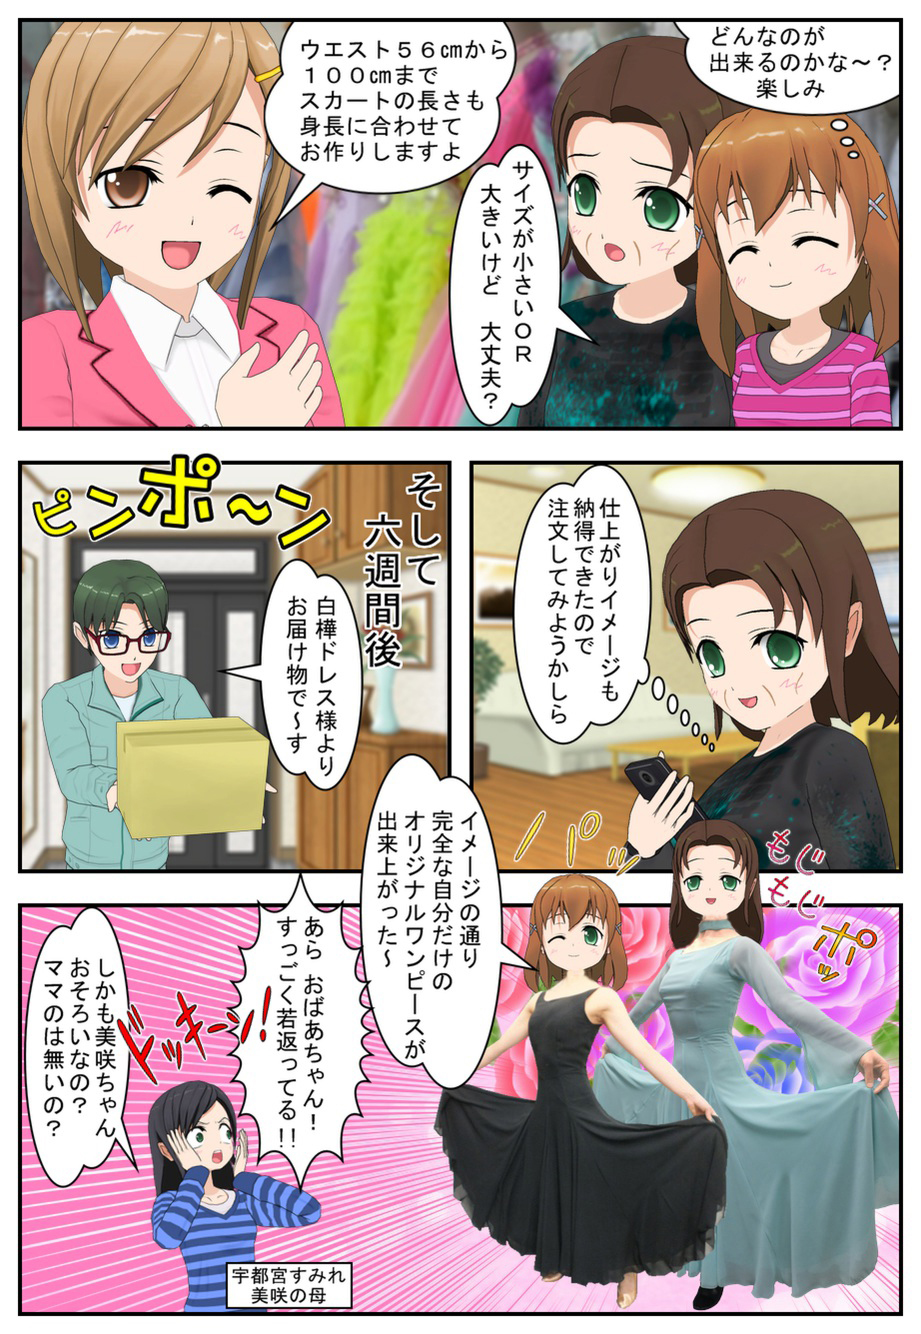 Shirakabadress CUSTOM-MADE 漫画02 白樺麗子